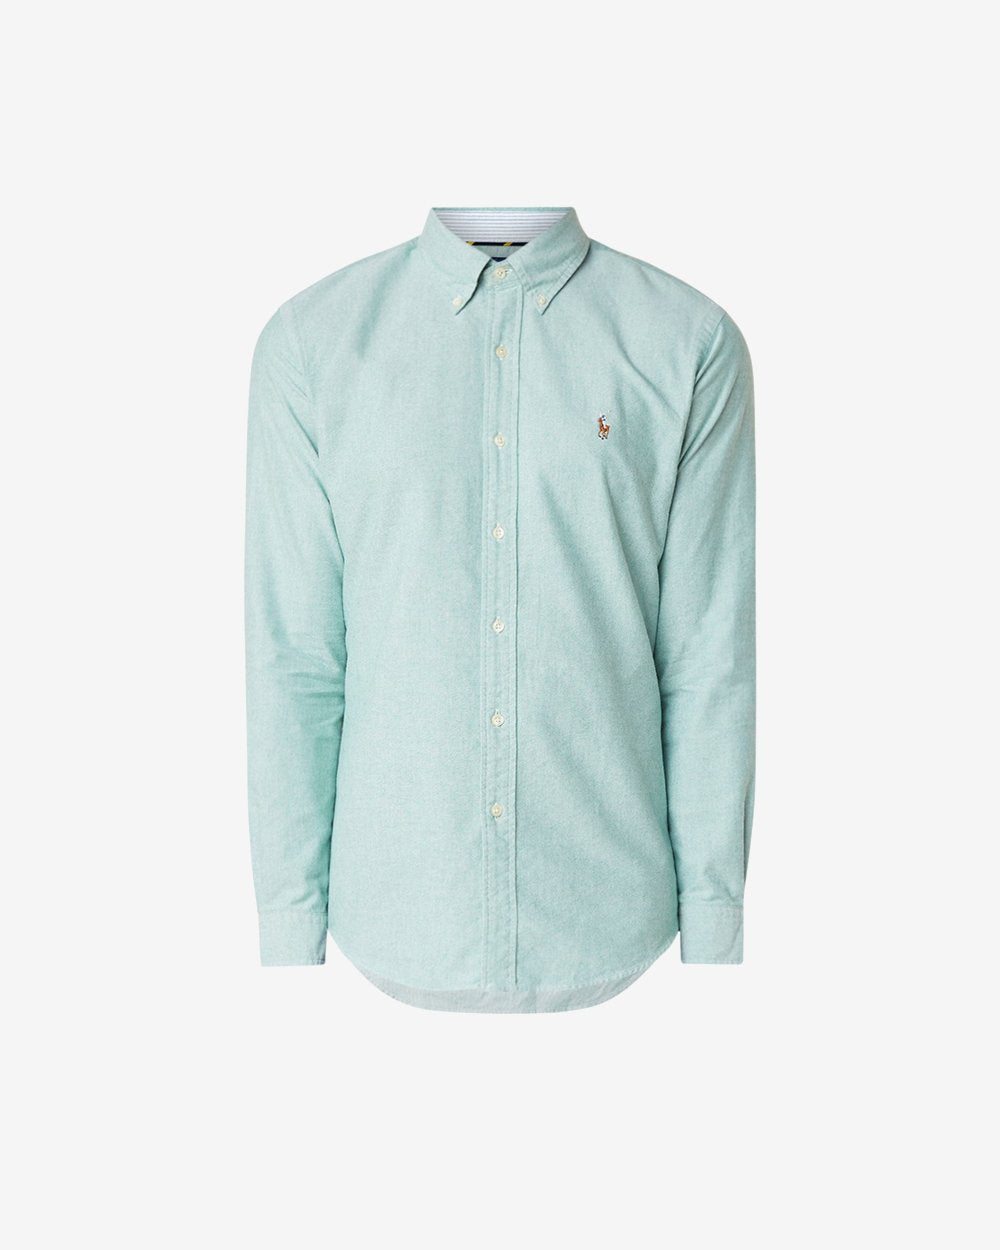 Qo Chambray Shirt